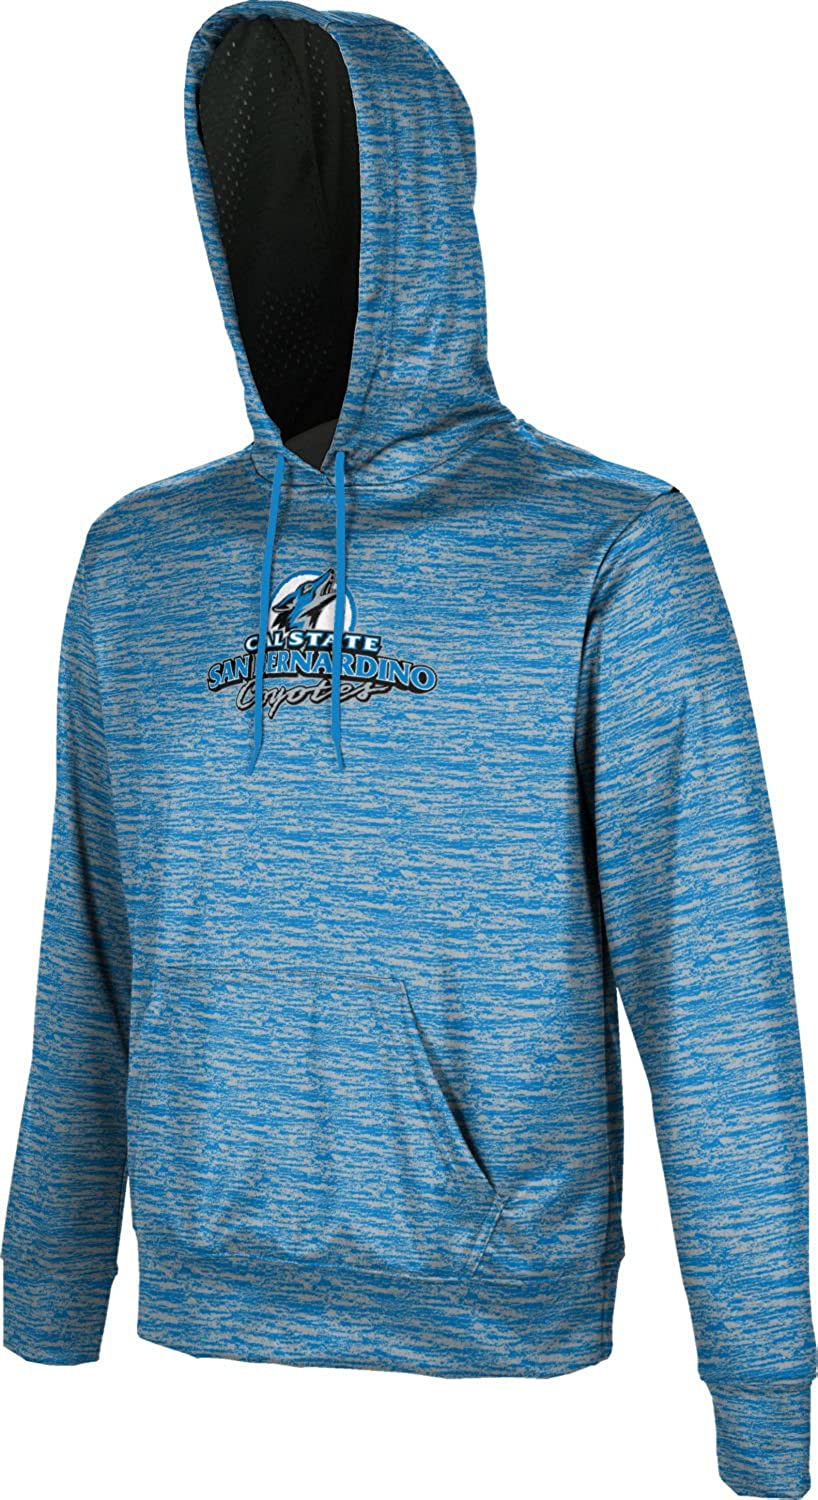 California State University San Bernardino Boys Hoodie Sweatshirt Brushed